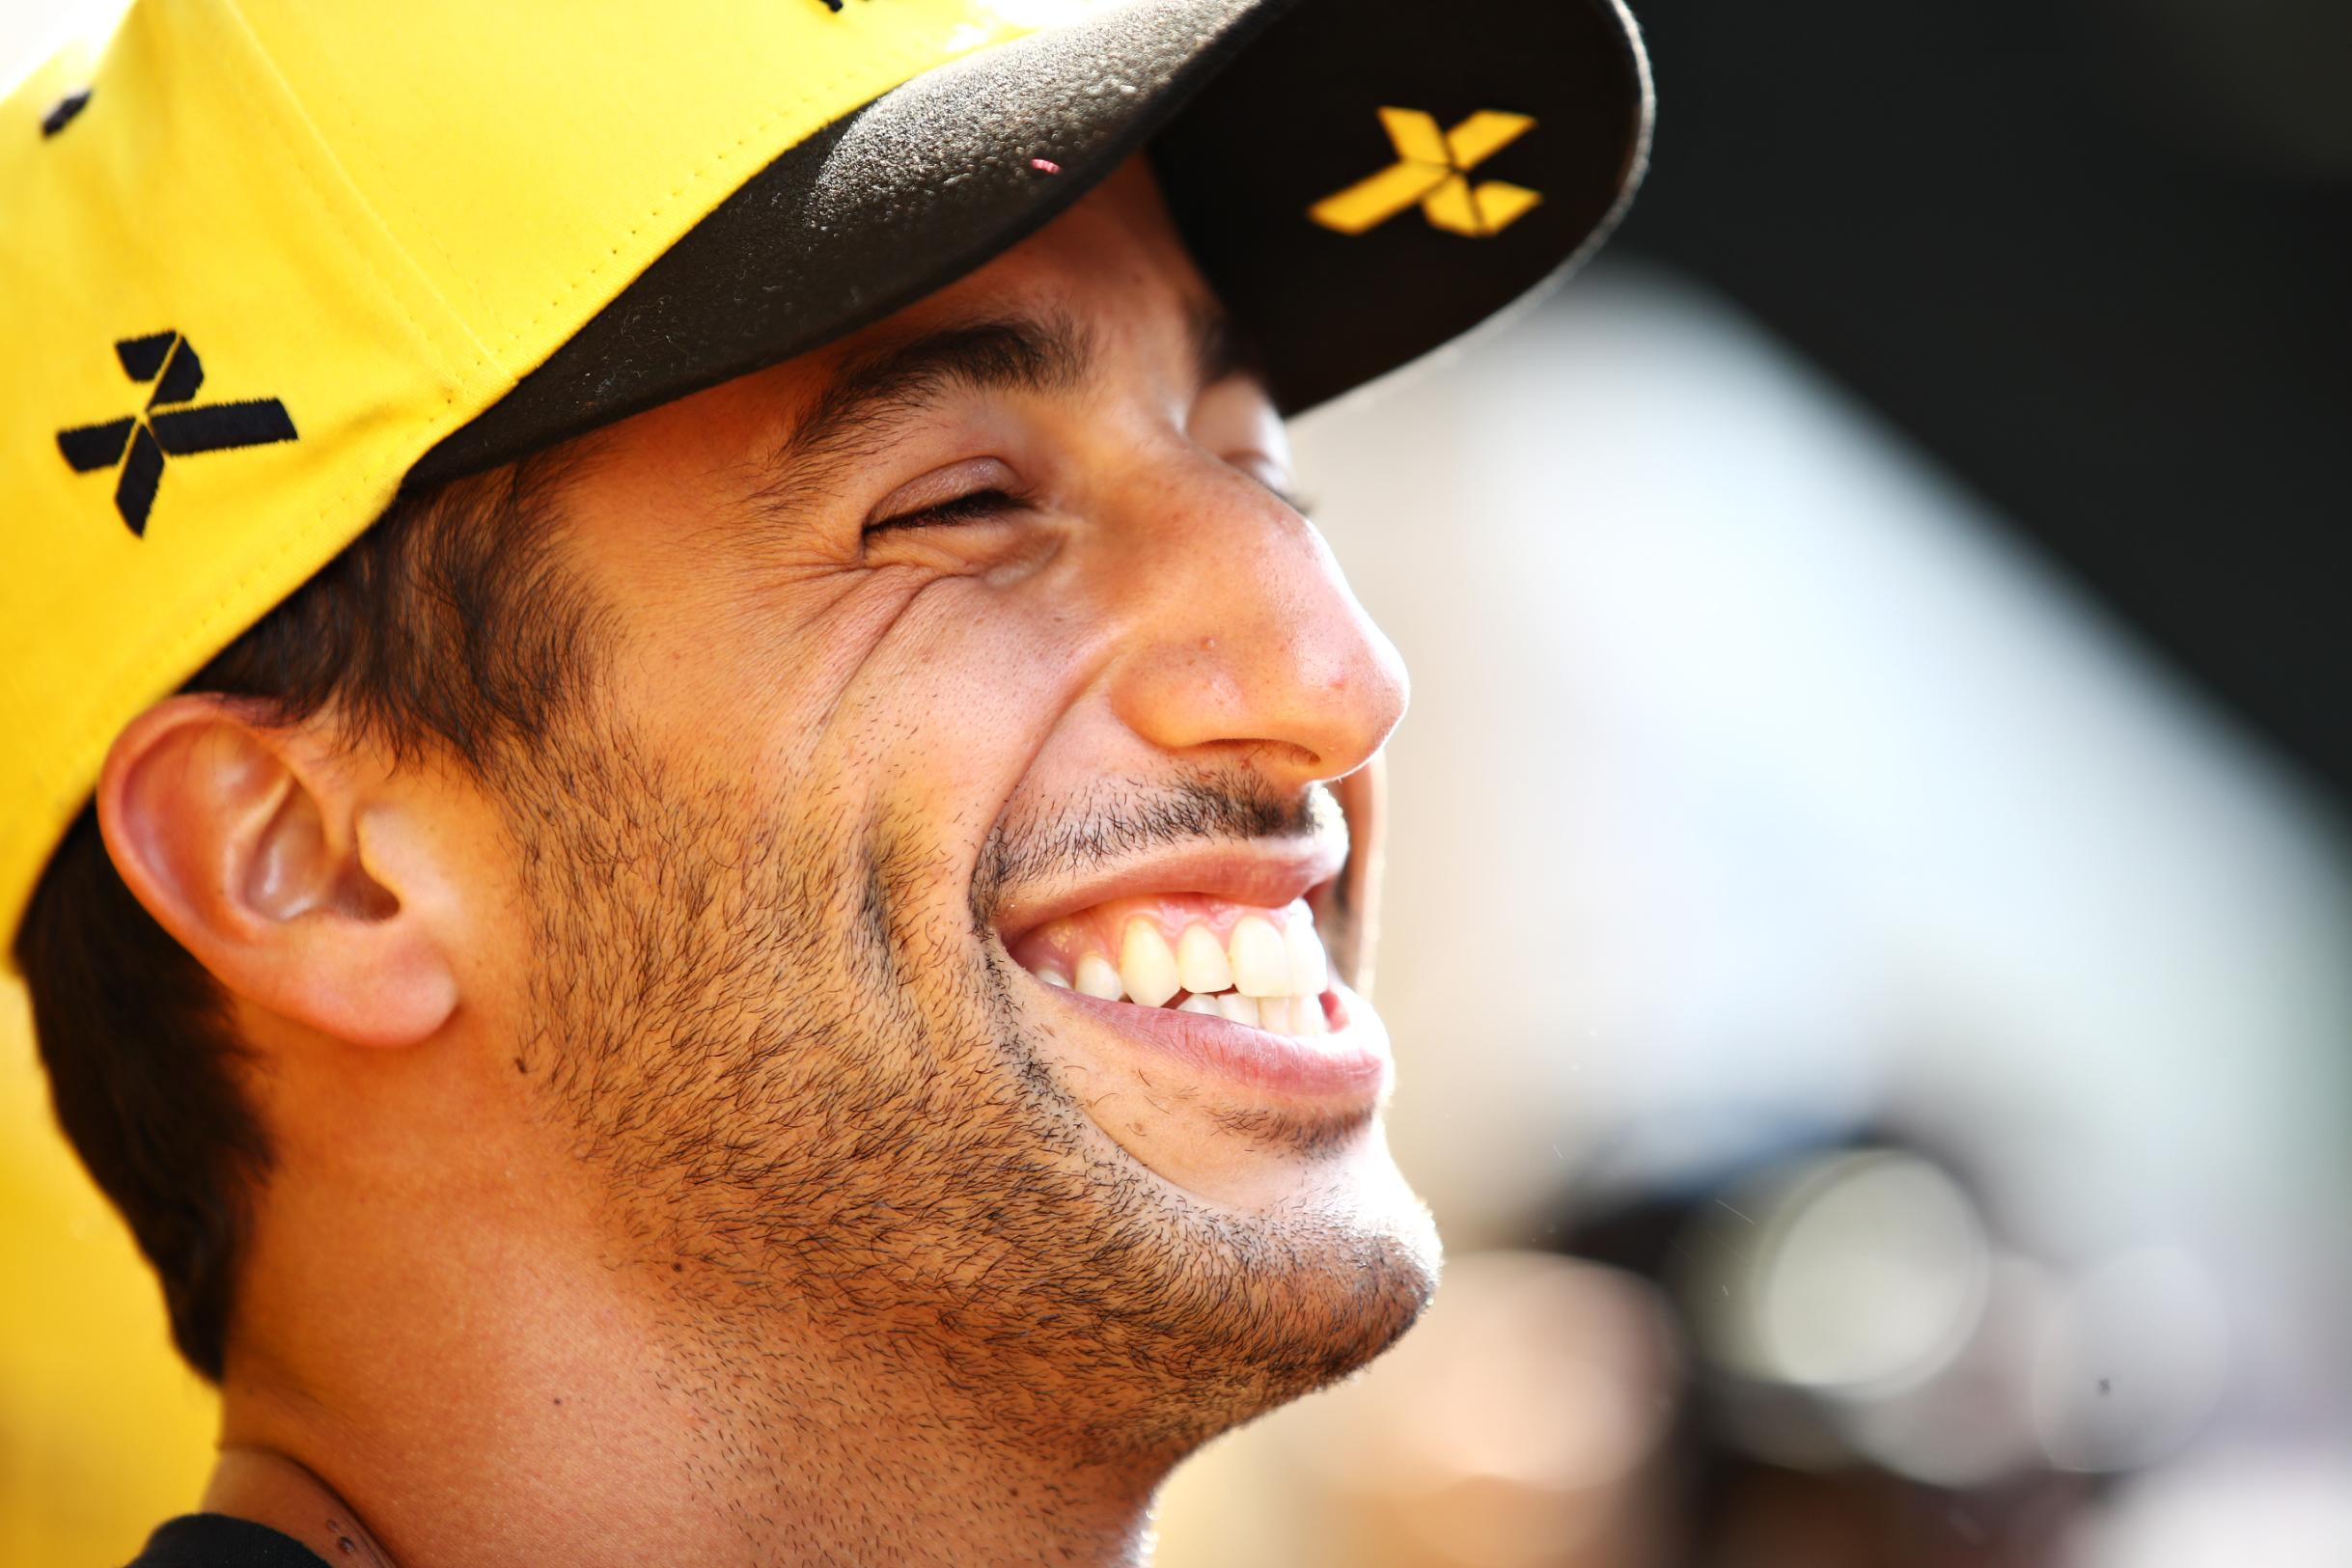 Daniel Ricciardo admits Ferrari discussions before McLaren move